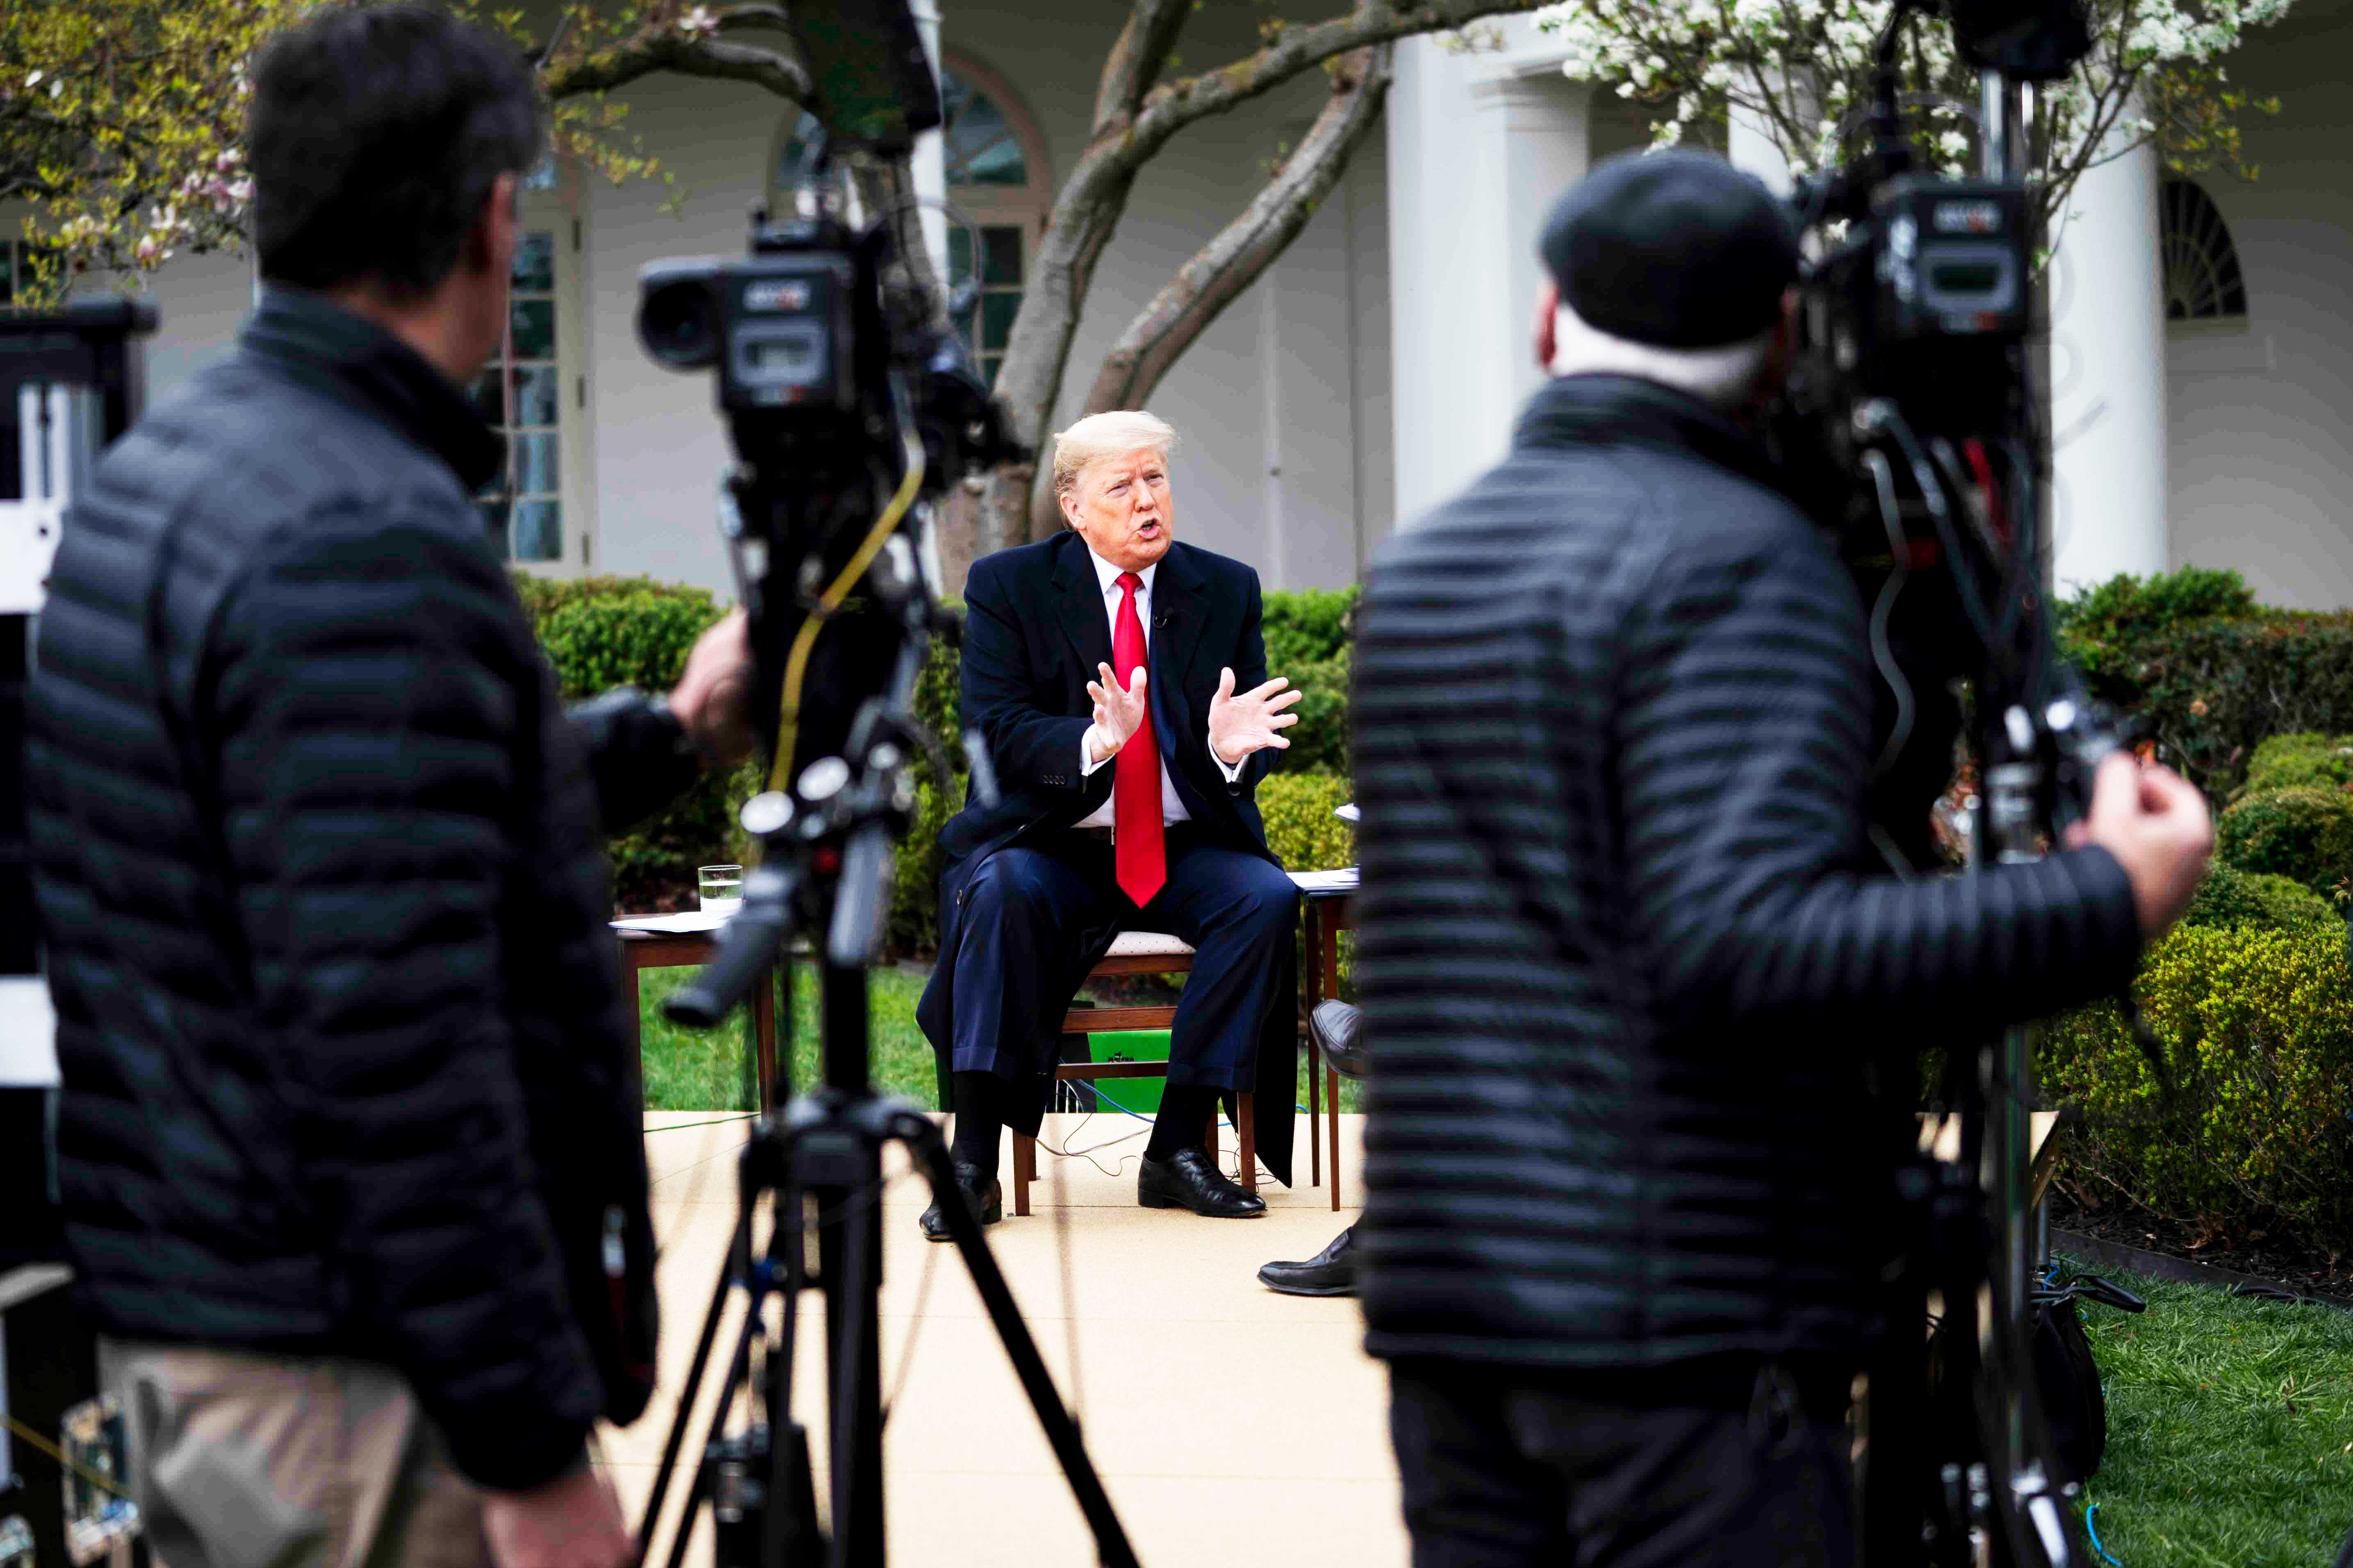 The Fox News moment that revealed a dangerously confused president